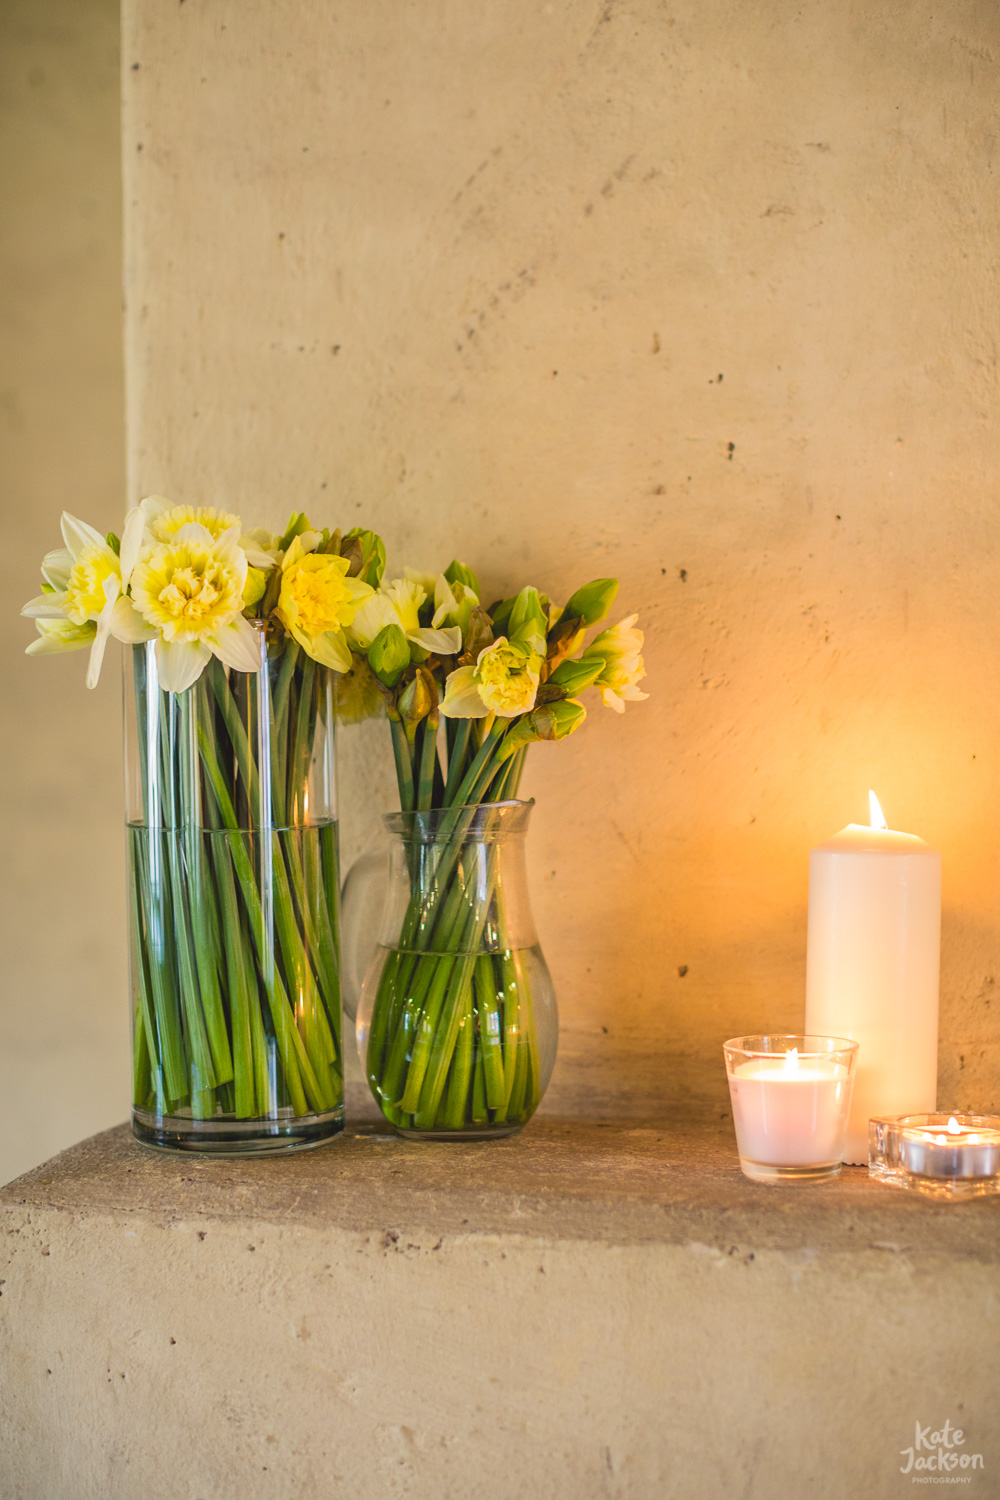 Spring Daffodils, Wedding Details - Blackfriars Priory Gloucester